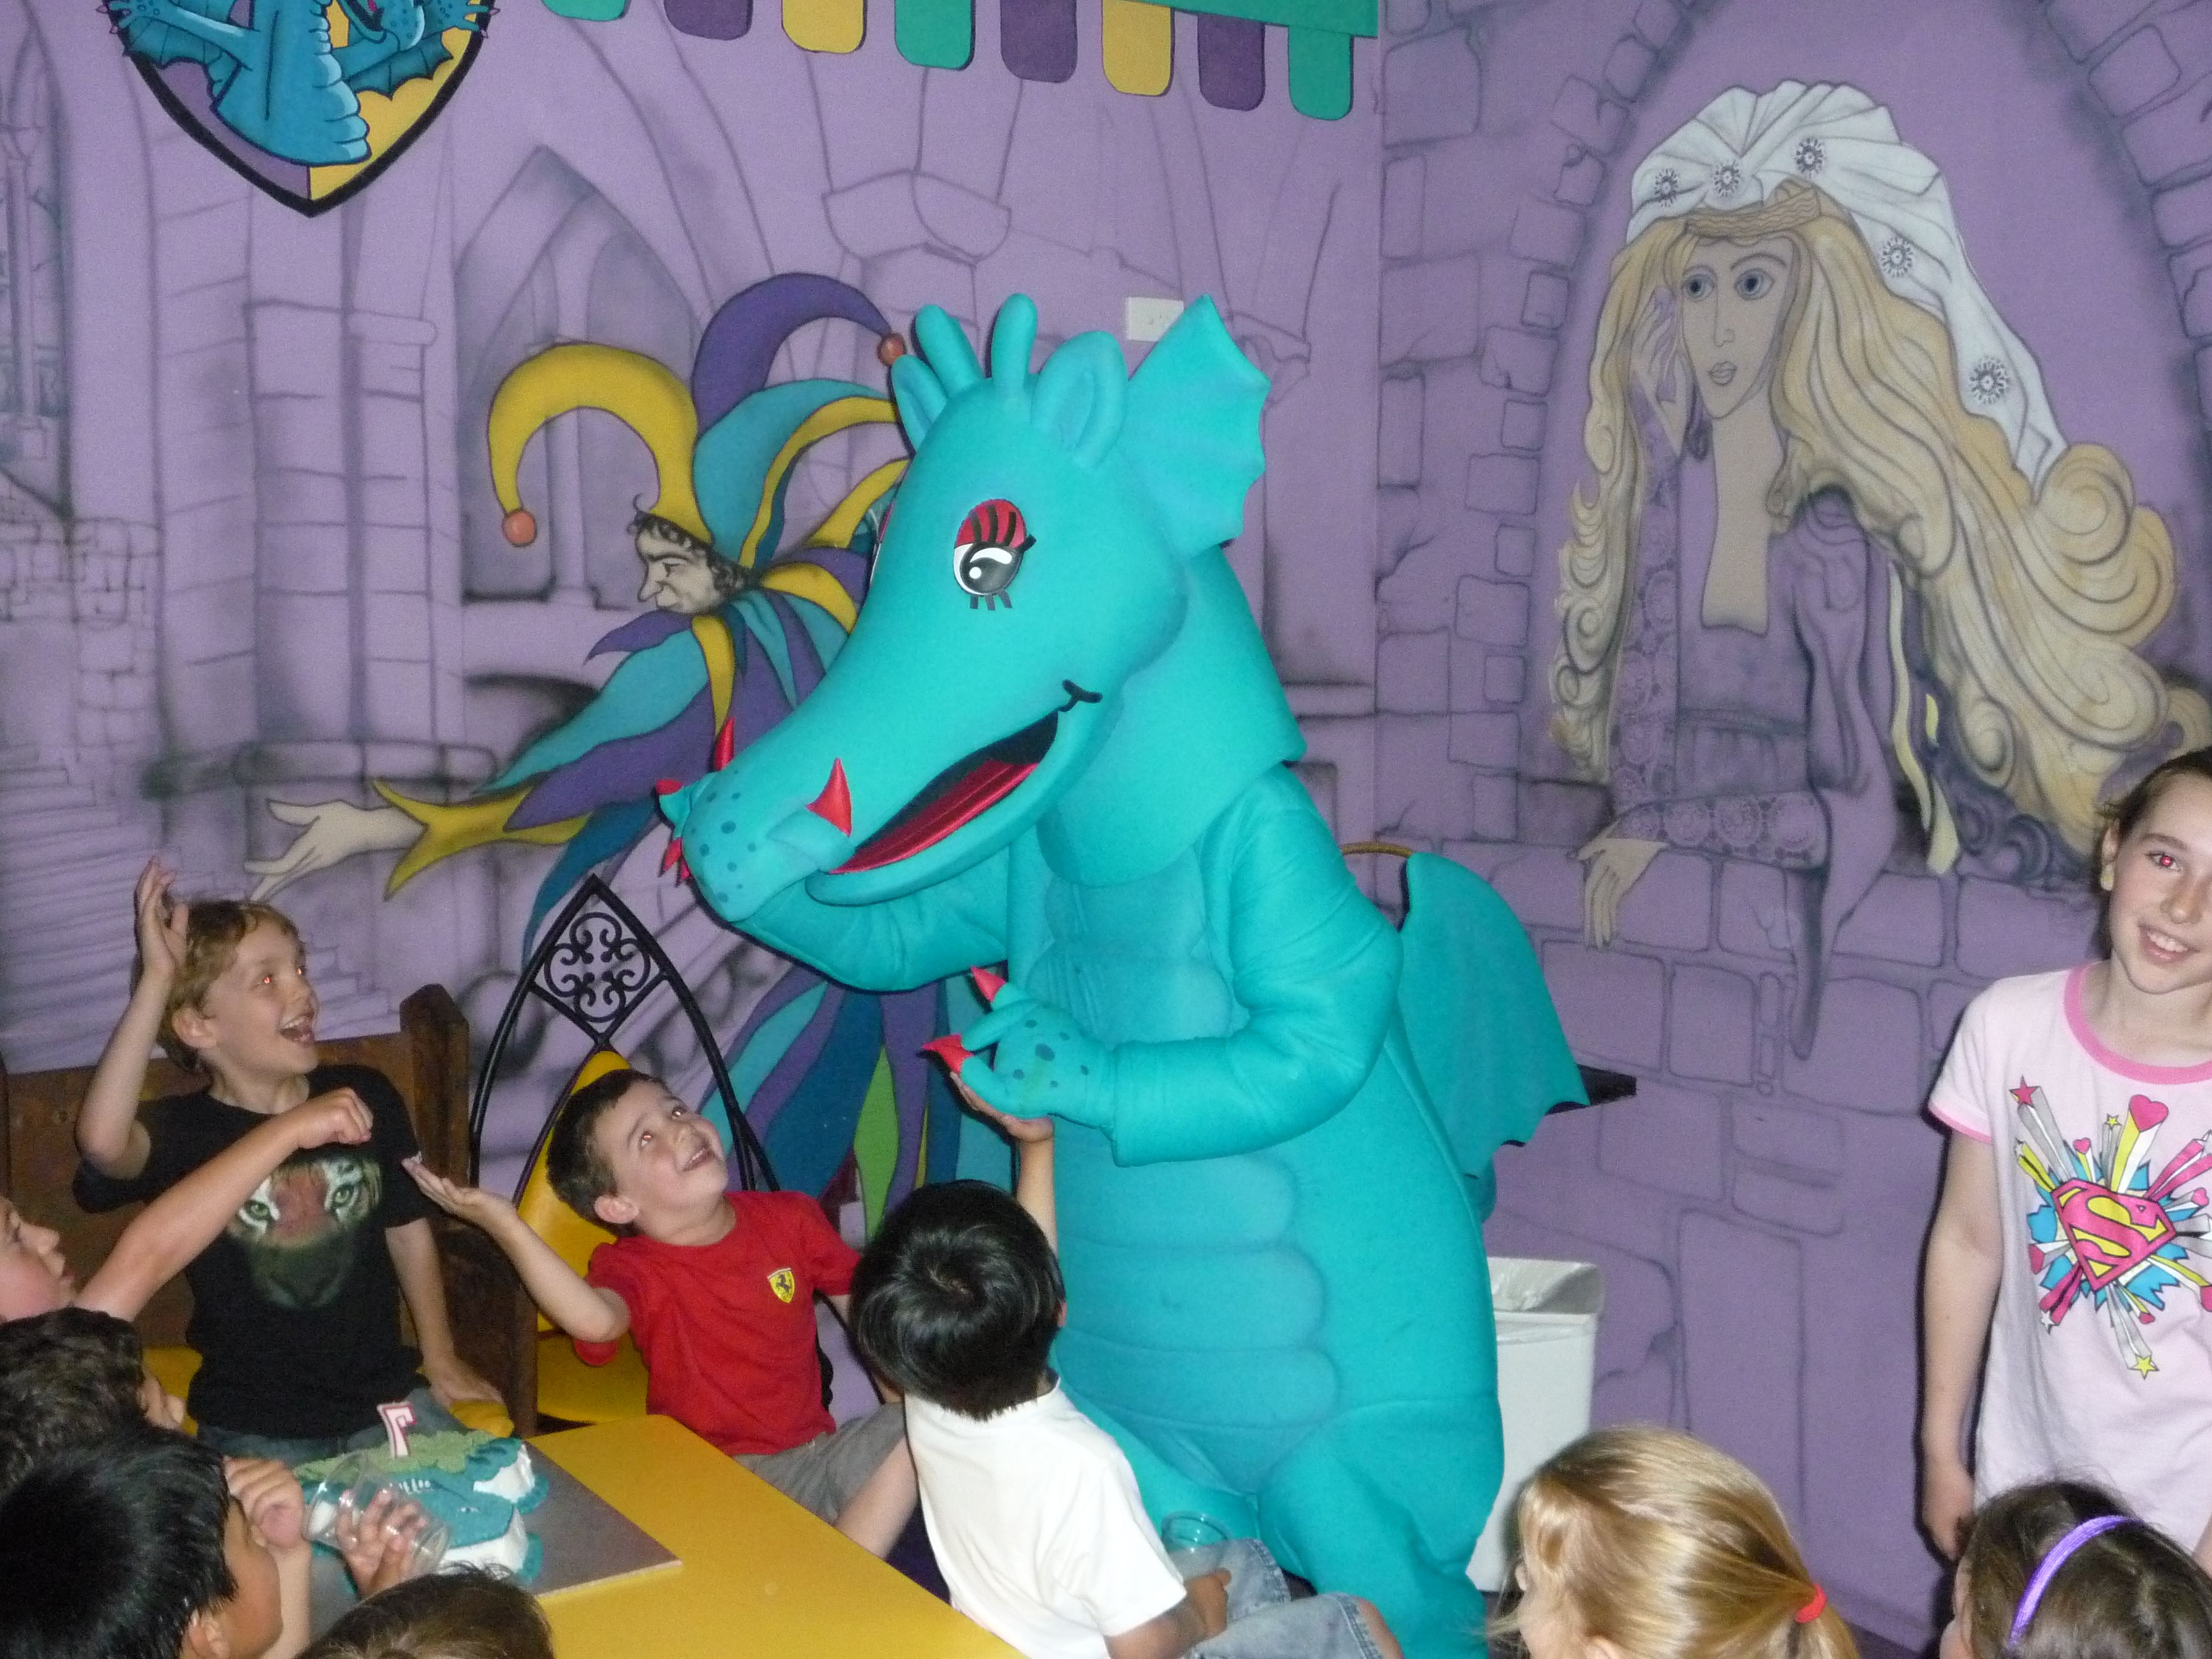 Looking For Play Centres Melbourne Or Kids Birthday Party Venues - Children's birthday parties melbourne